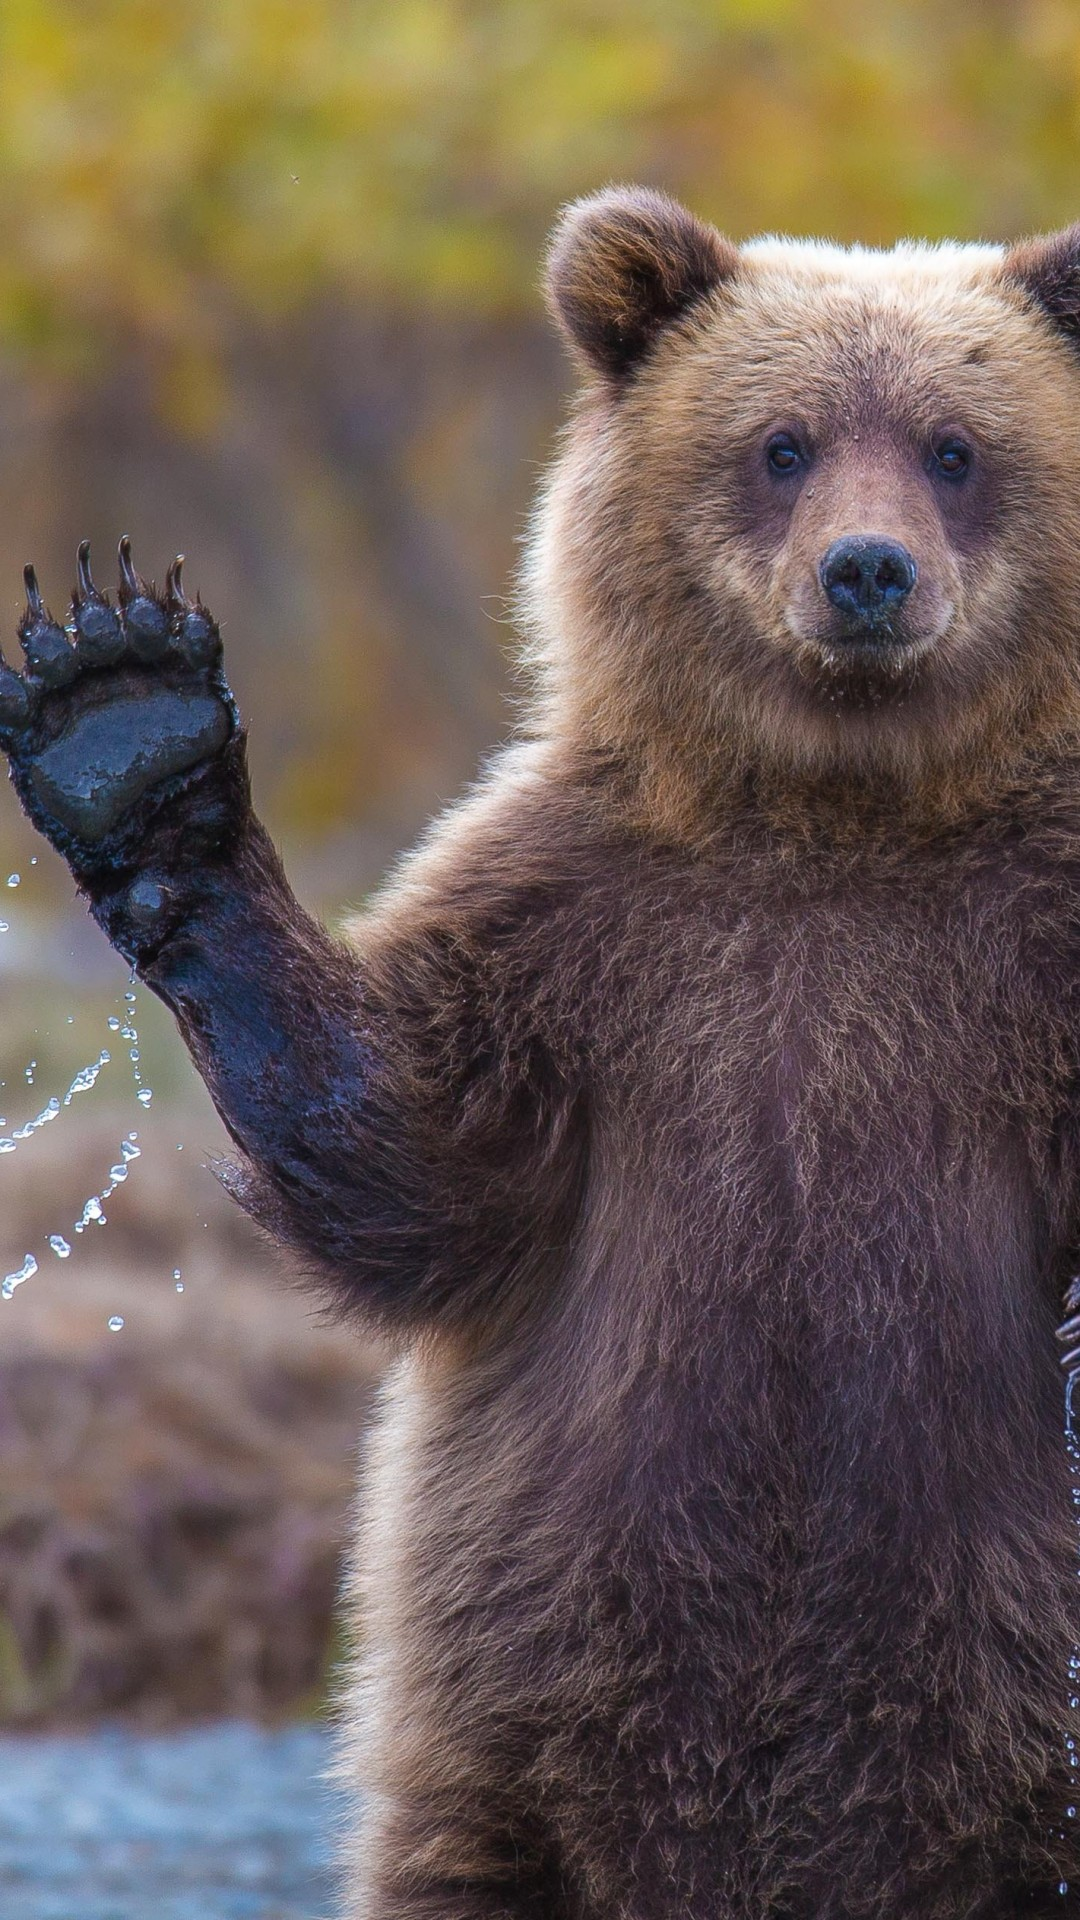 Wallpaper Bear 4k Hd Wallpaper Hi Water National